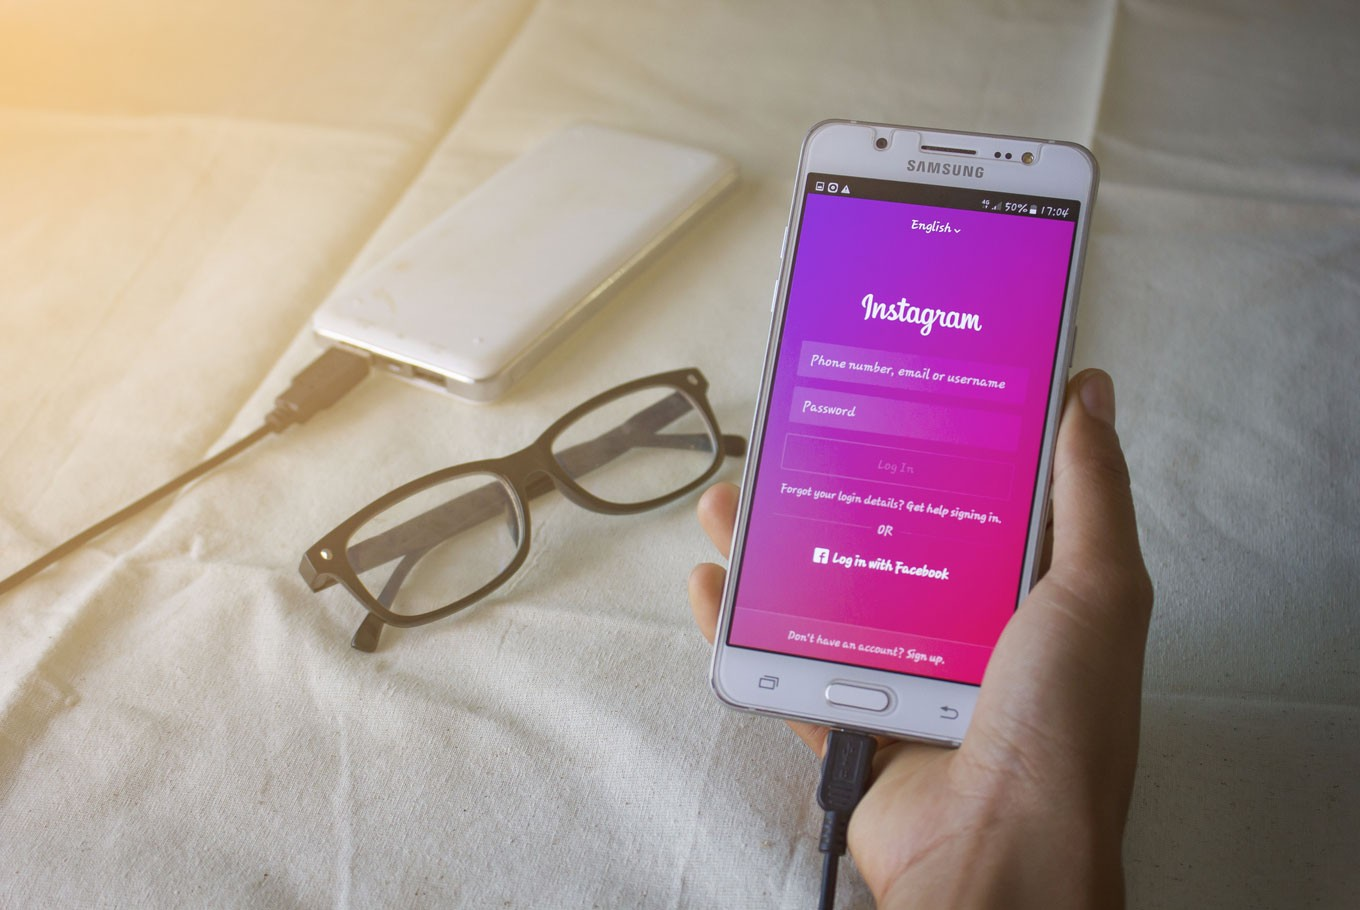 Instagram can now automatically filter offensive comments